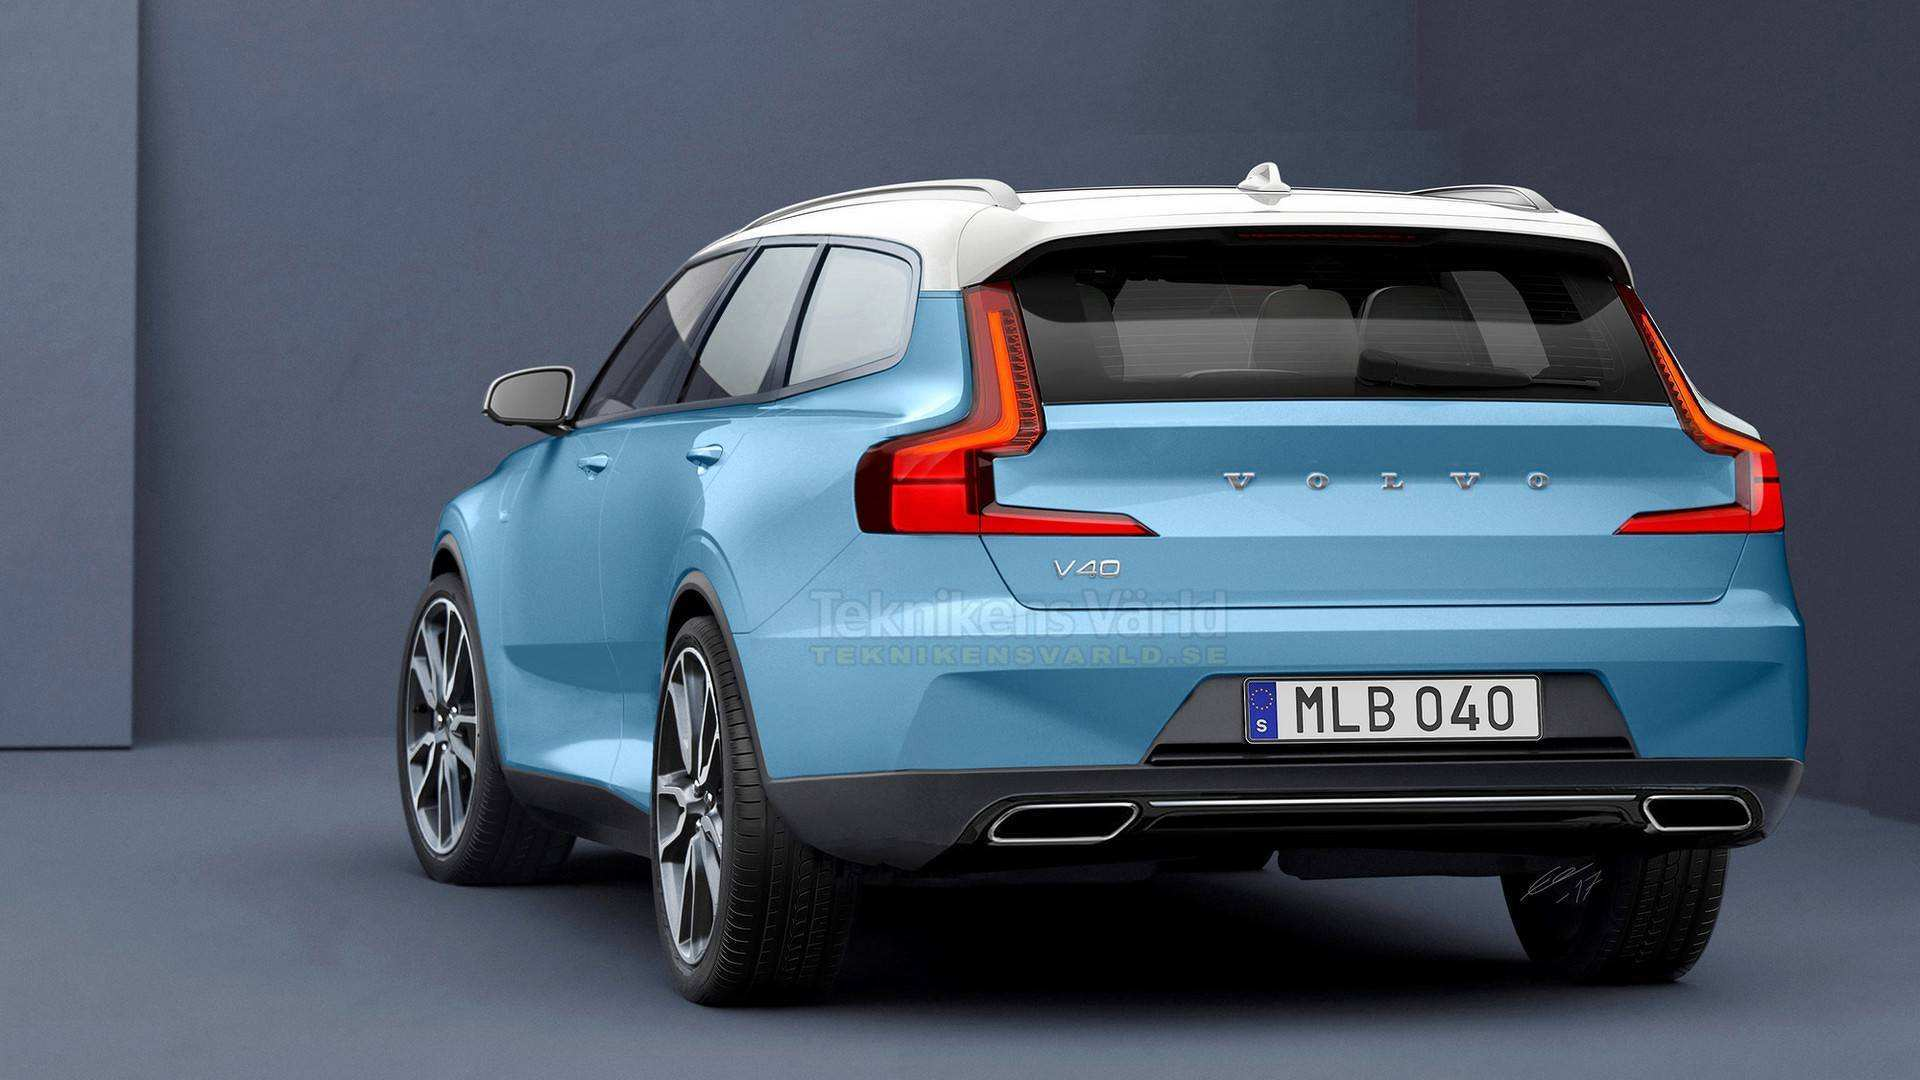 83 Great Volvo V40 2020 Rumors with Volvo V40 2020